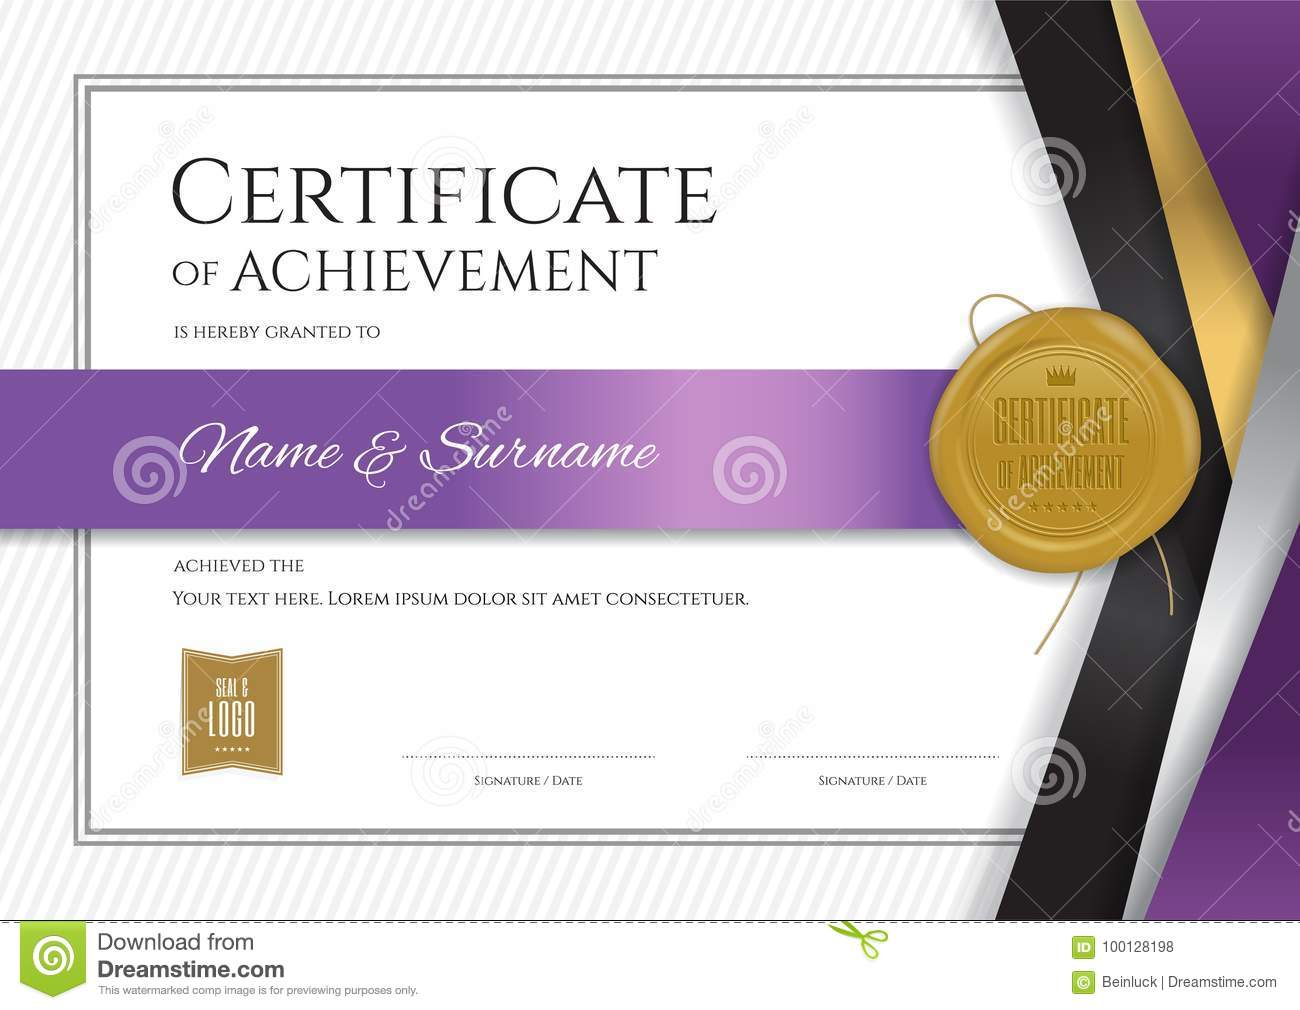 Luxury certificate template with elegant border frame, Diploma d